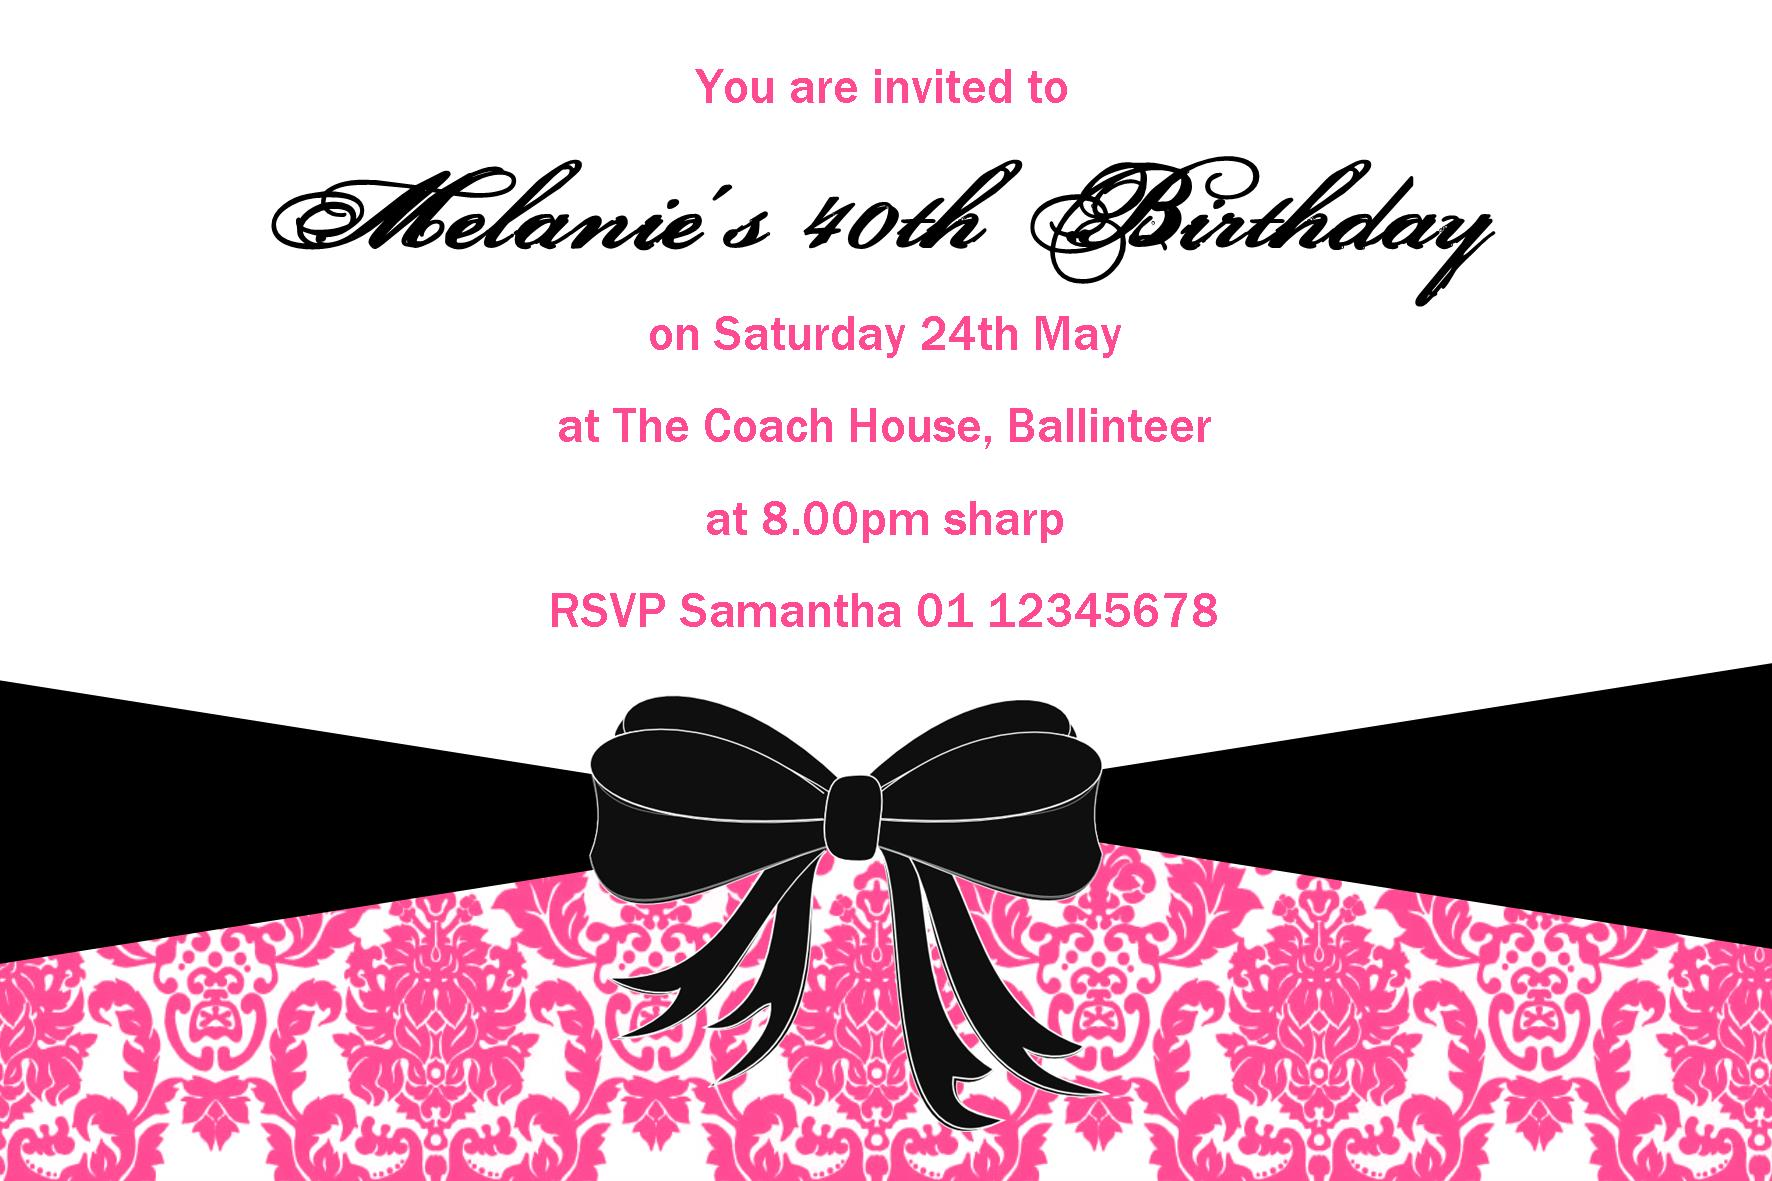 Personalised Birthday Invitation Design 15 2217 P